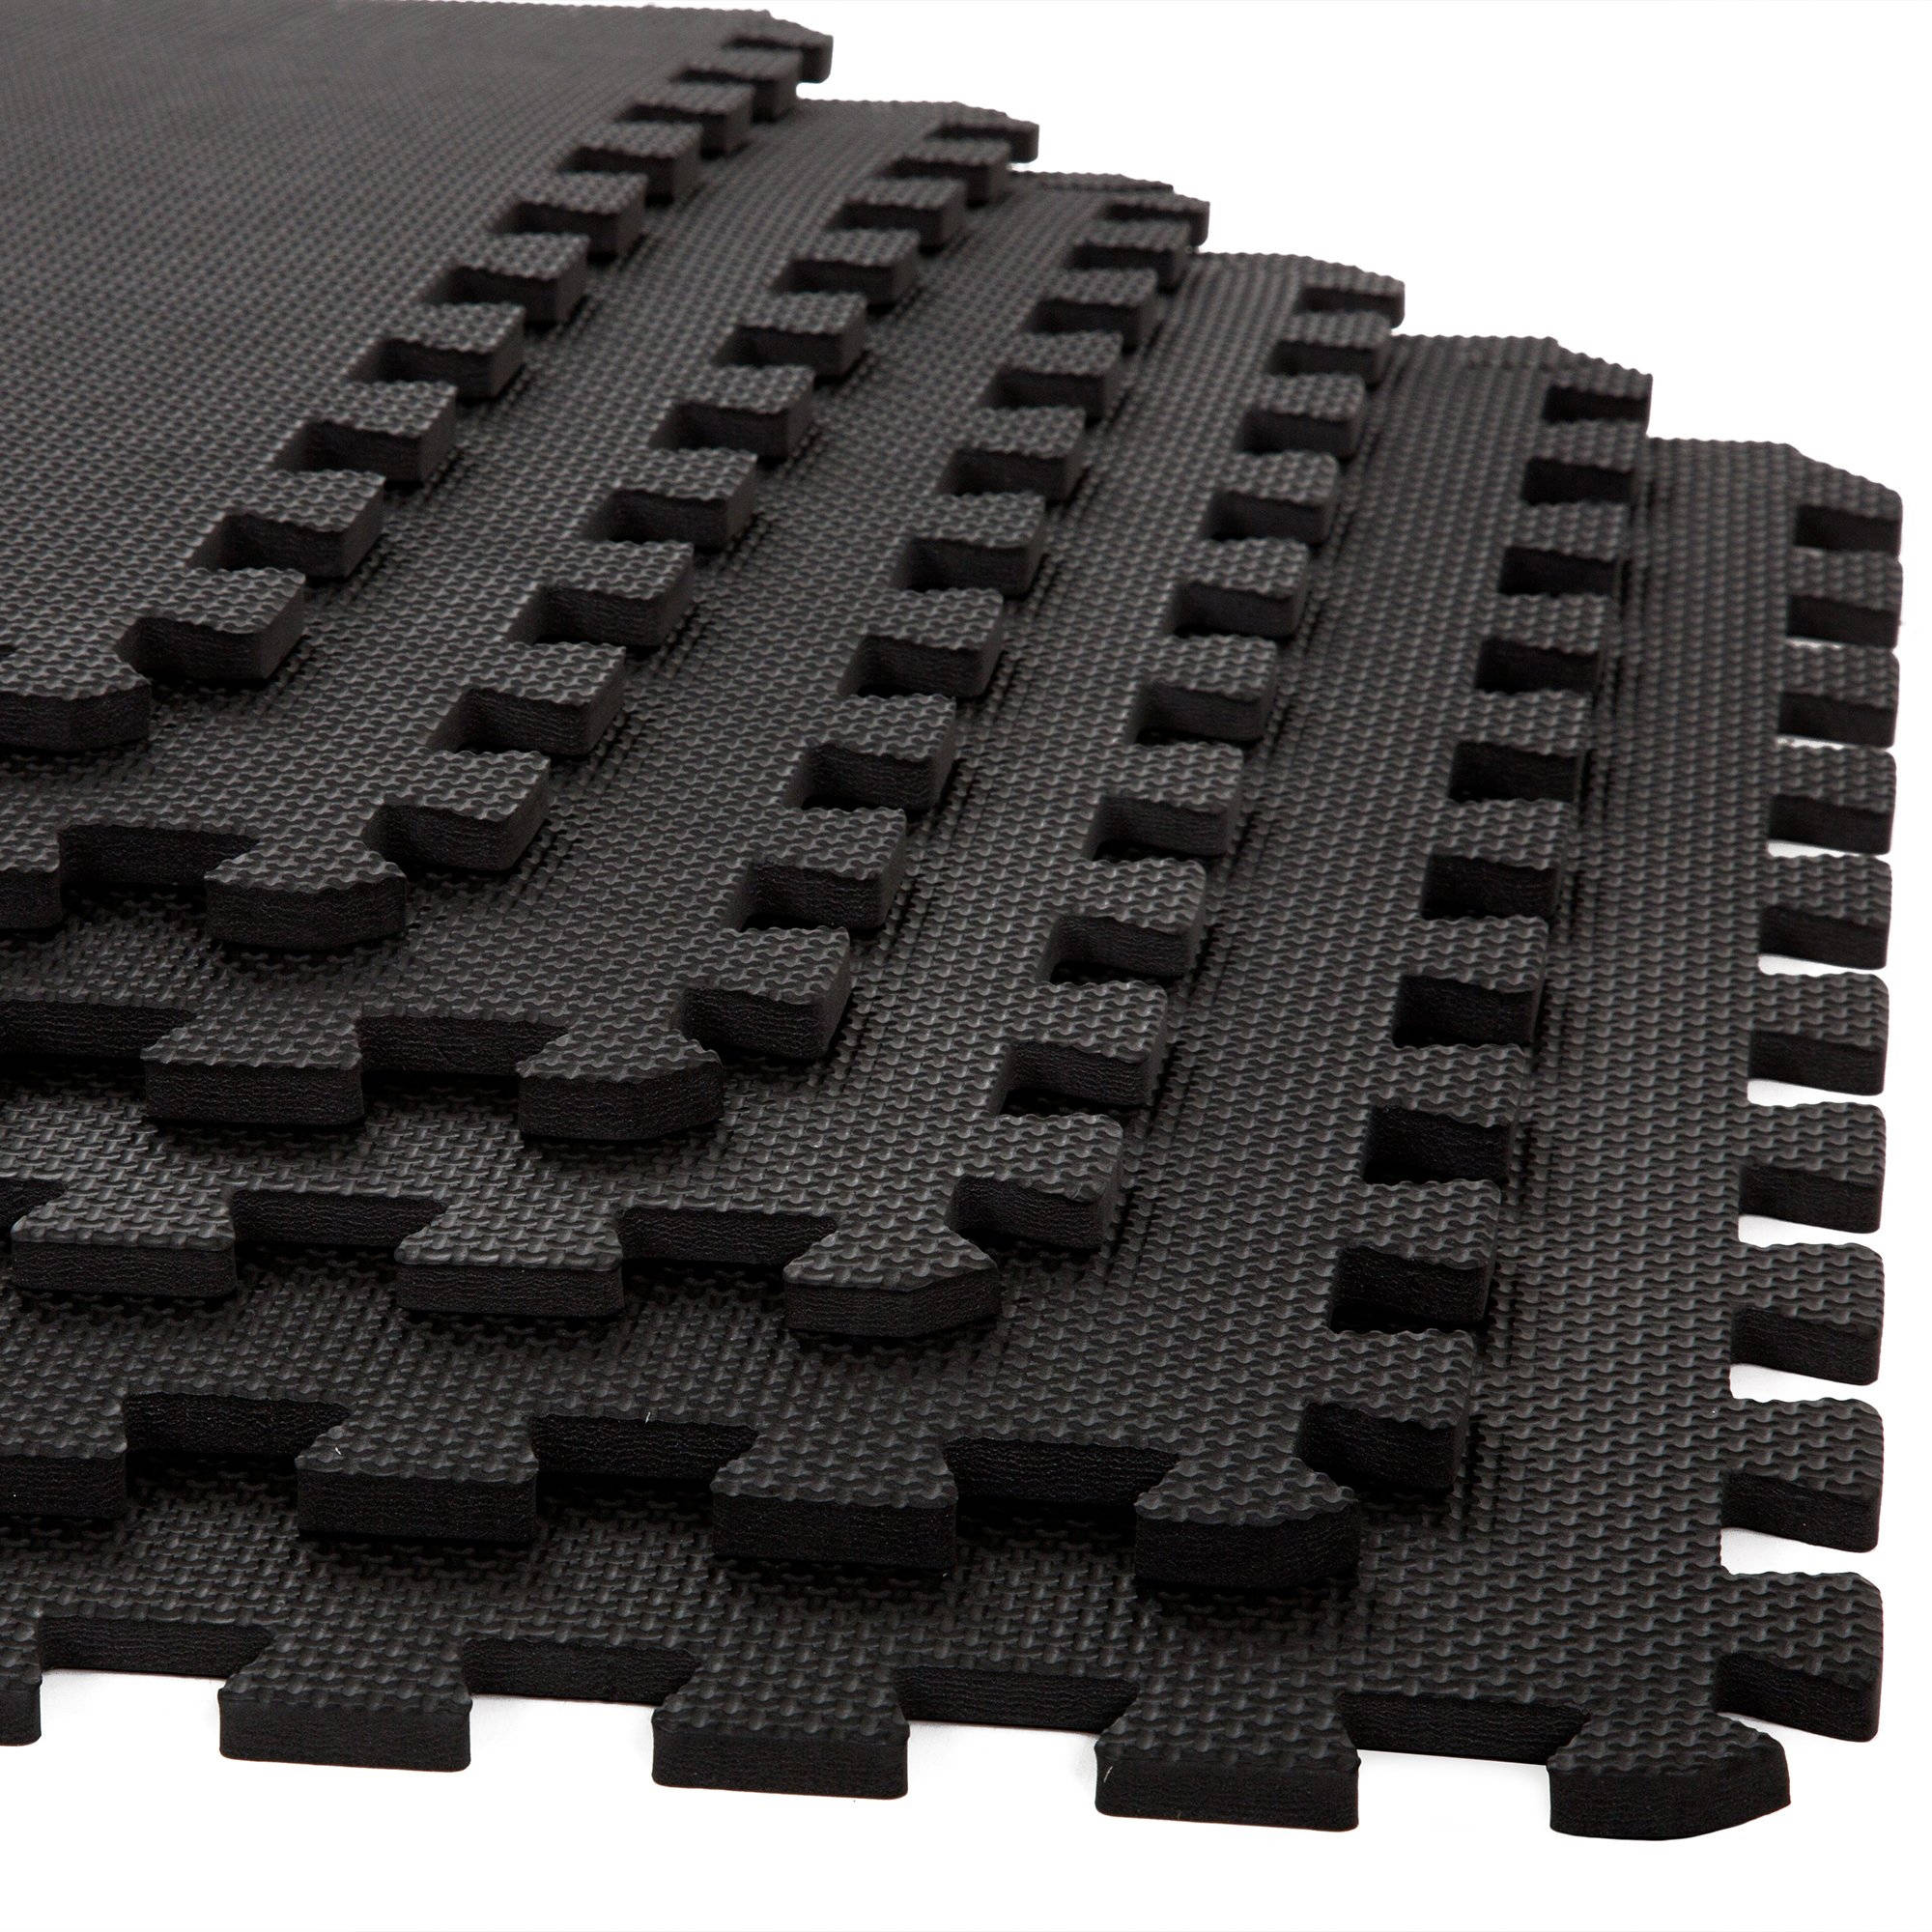 Stalwart 6-Pack Interlocking EVA Foam Floor Mats, 24x24x0.375